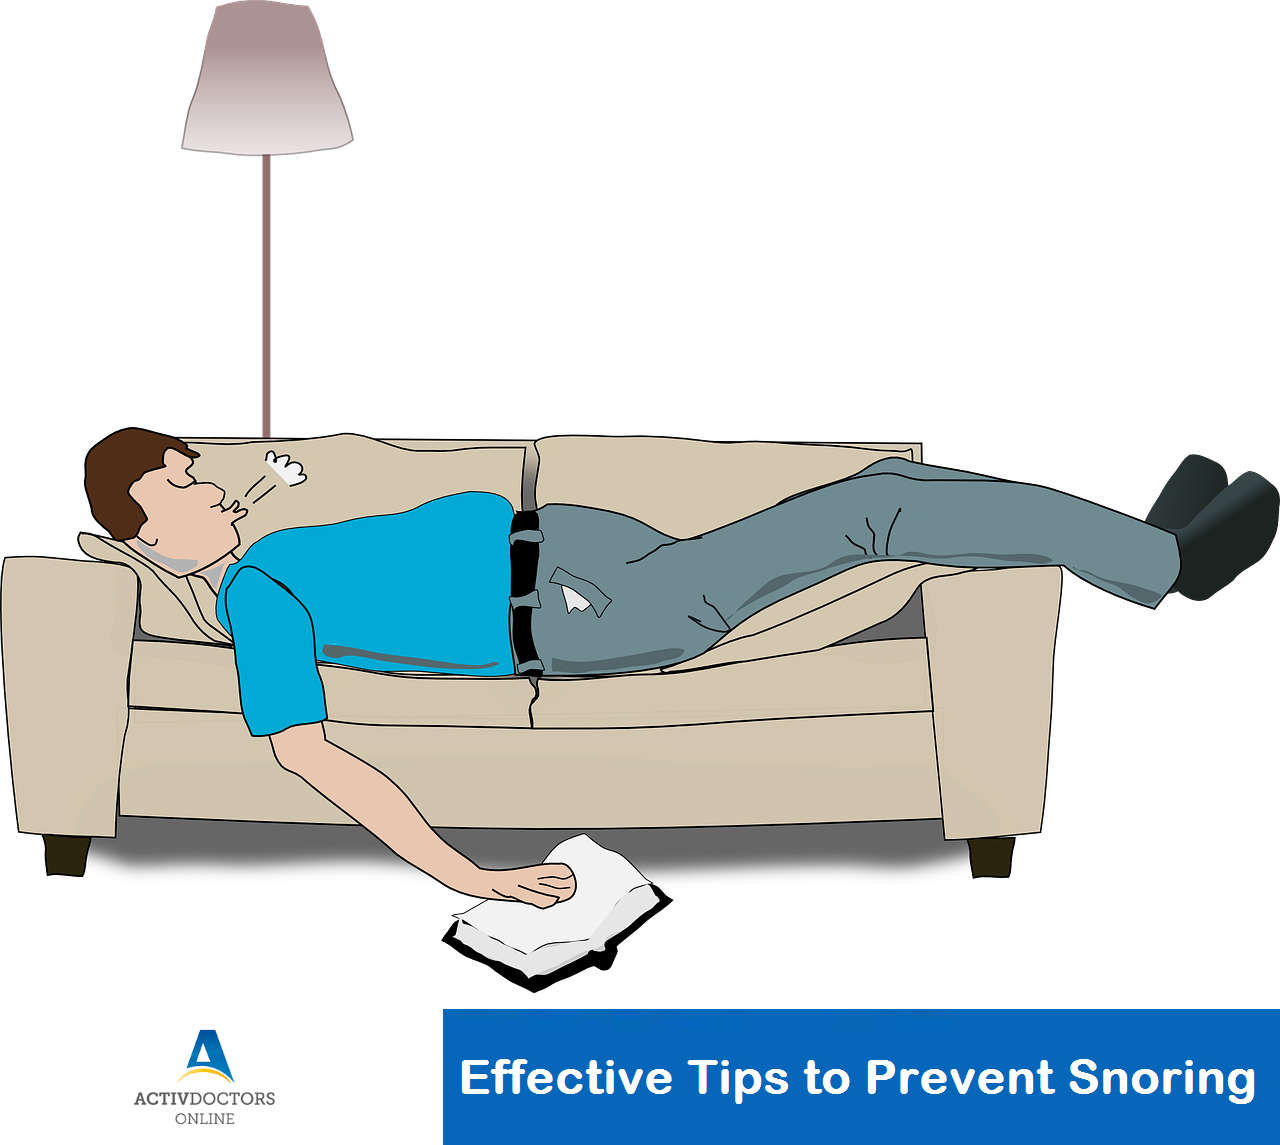 Effective Tips to Prevent Snoring